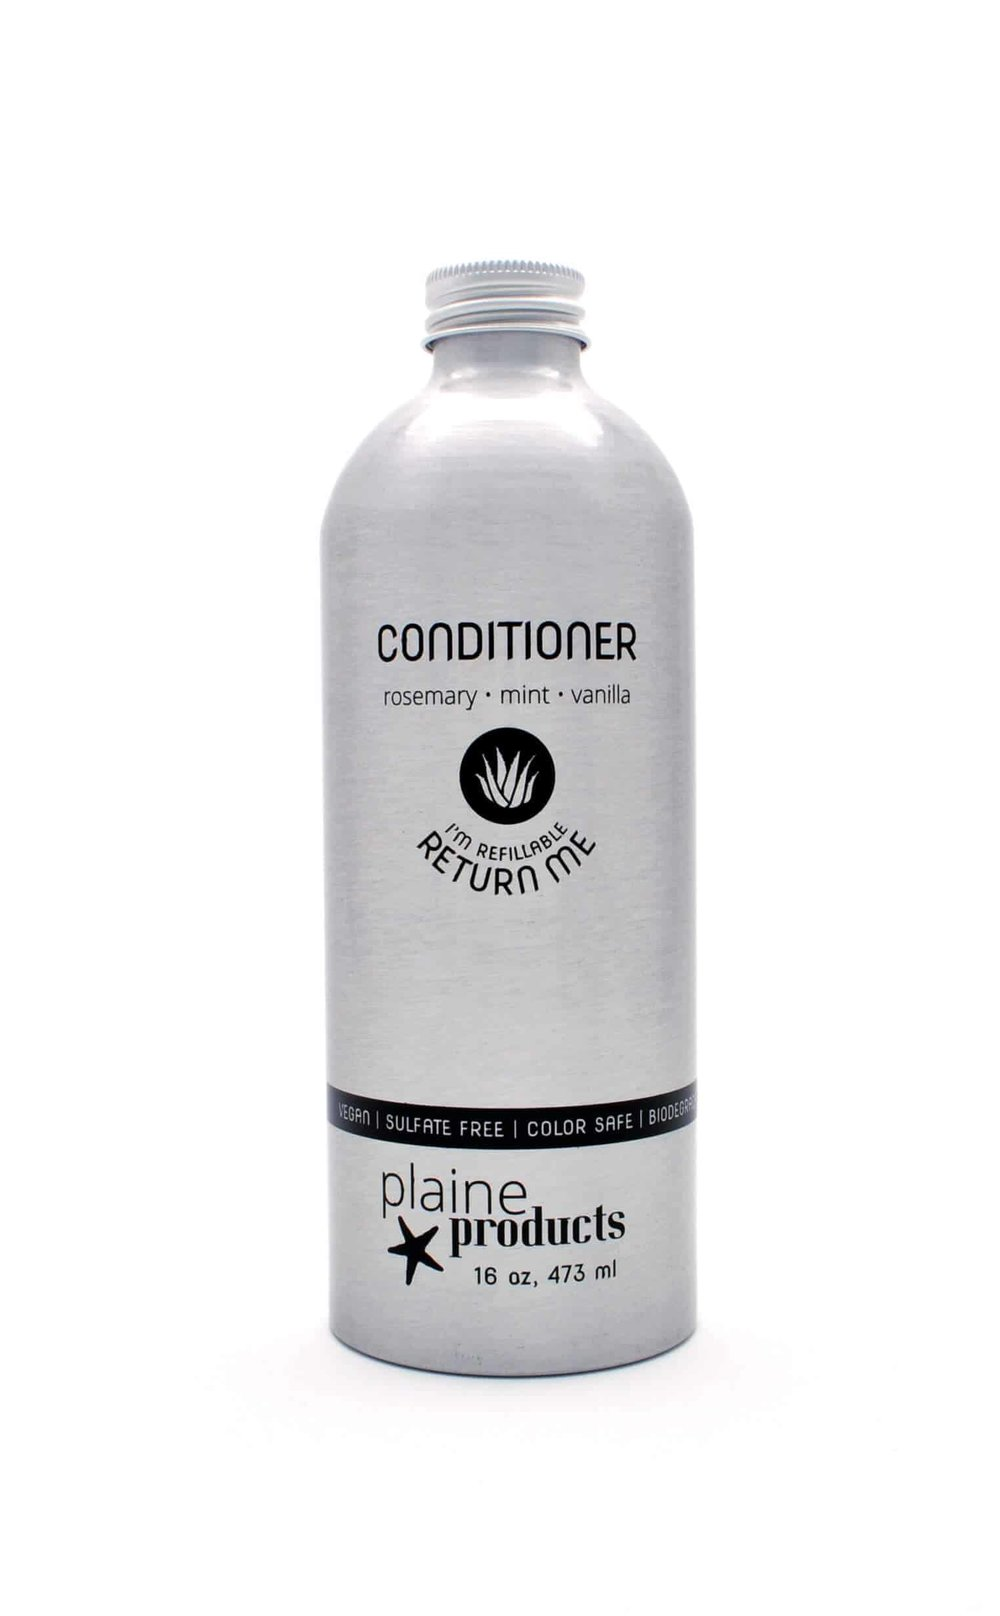 Conditioner.   Shop  Reusable and Refillable container. Make a one-time purchase and return to the shop when a refilled bottle is needed. Subscription program available.  Alternatively, you can  buy lotion in bulk  and use a shower dispenser at home for daily use.